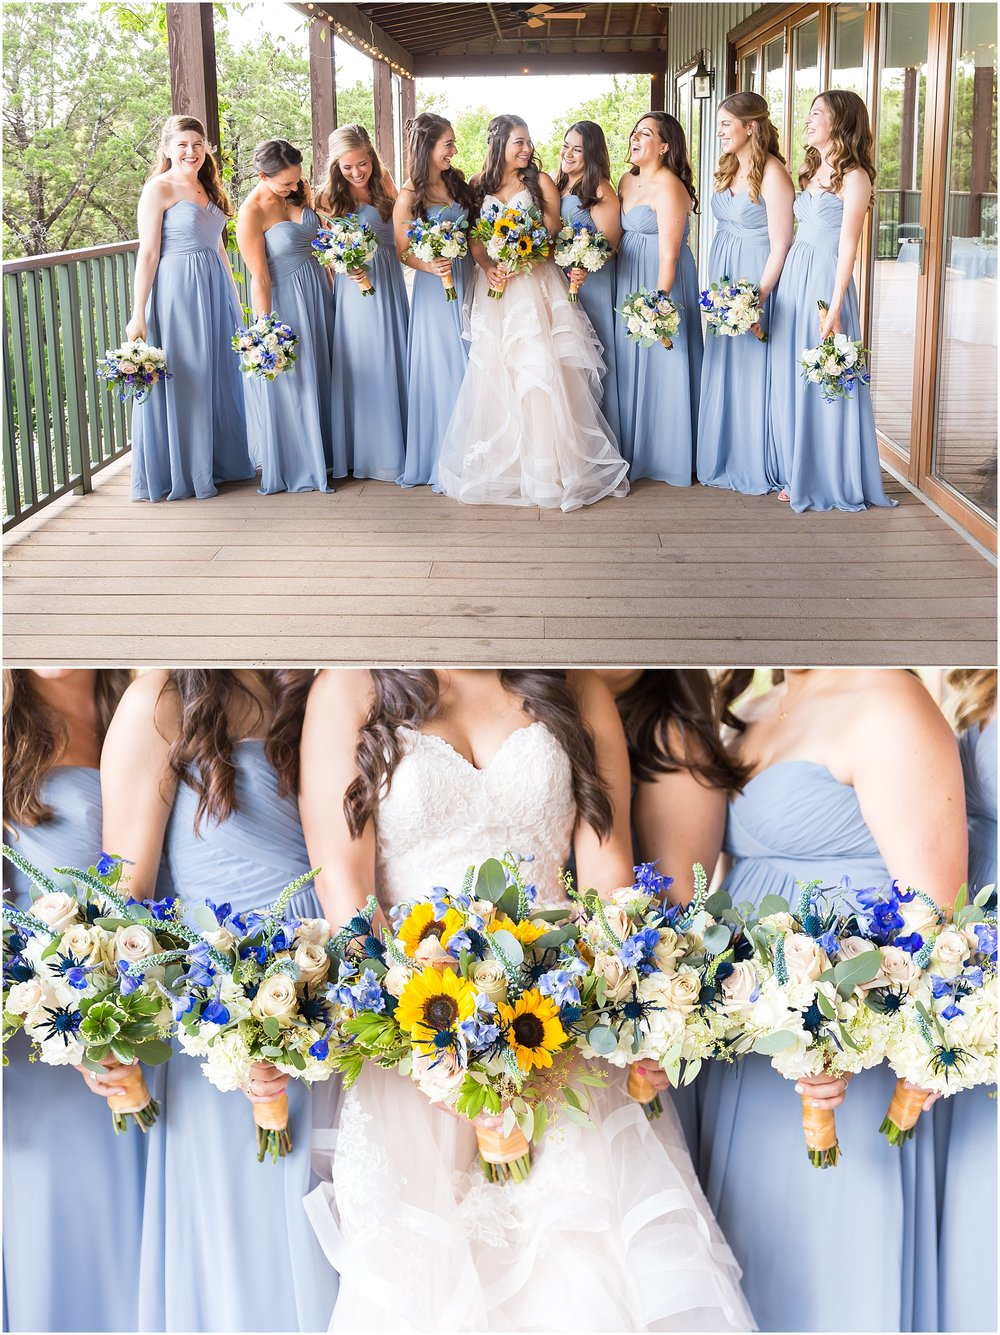 blue and white wedding bouquets - summer wedding at the Carleen Bright Arboretum in Waco, Texas - Jason & Melaina Photography - www.jasonandmelaina.com